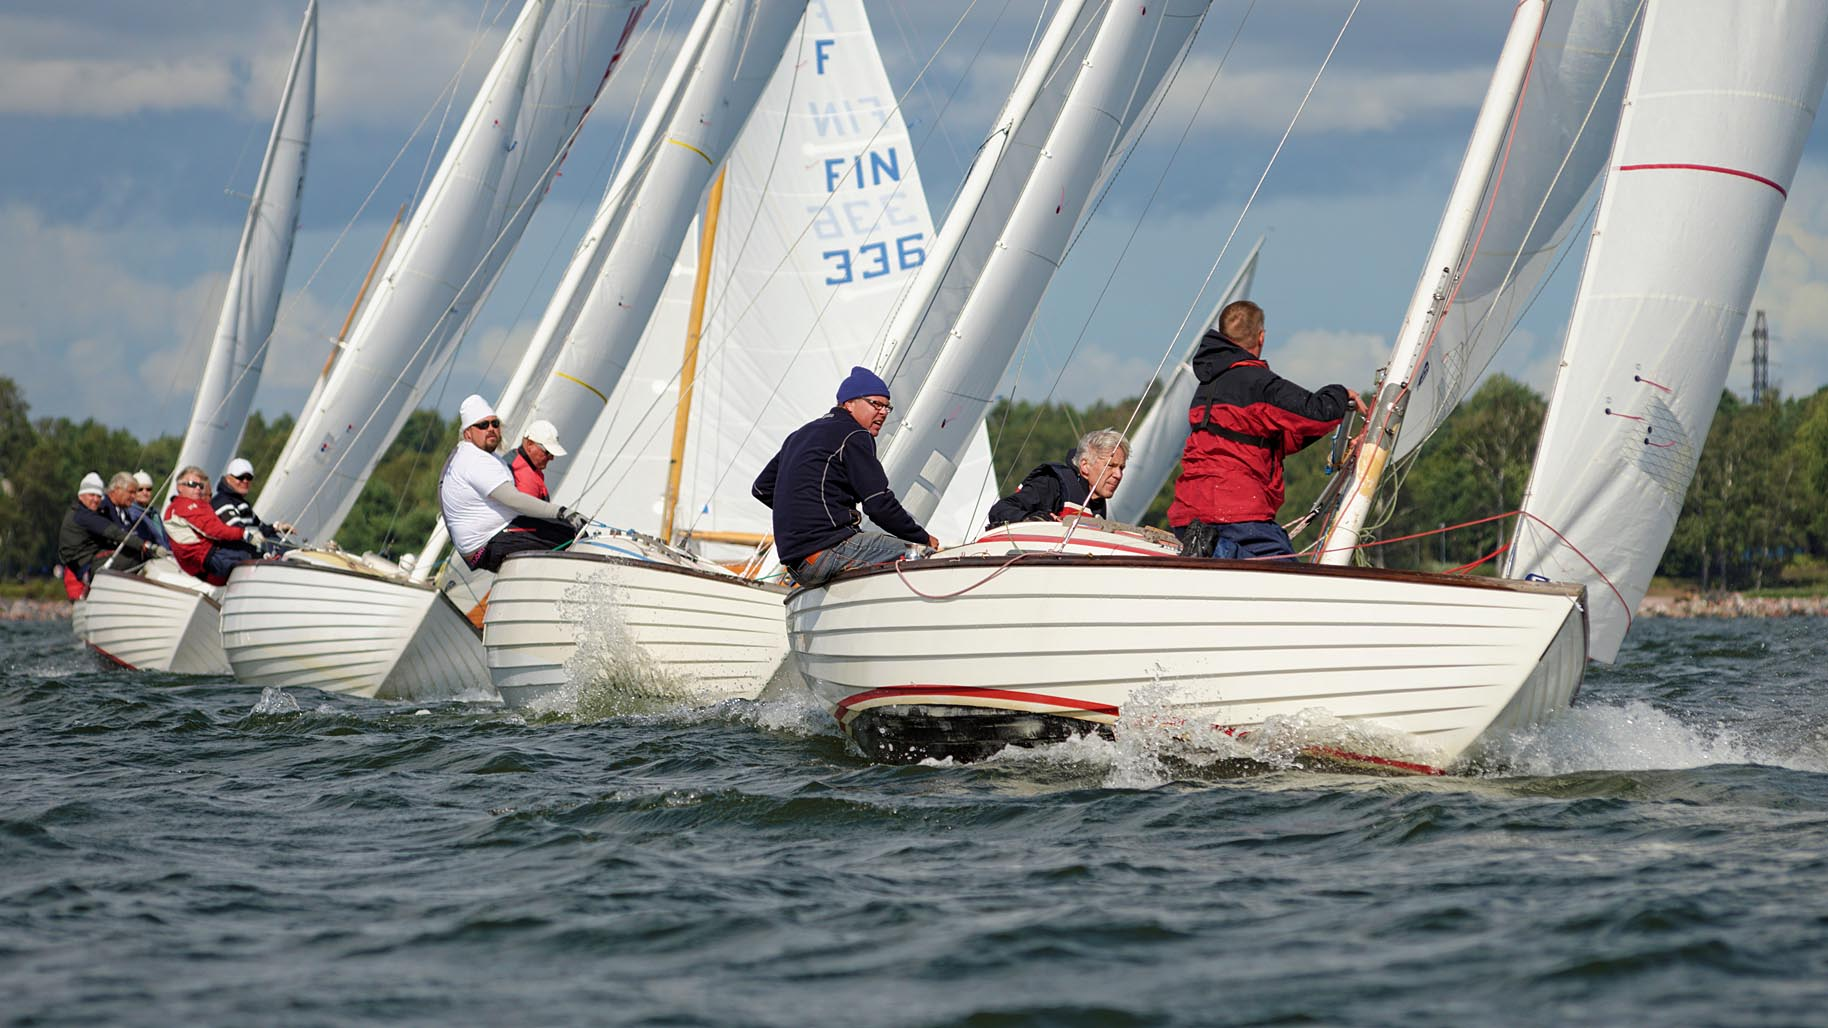 First day at the Nordic Folkboat Finnish Championship organized by HTPS. Perfect sailing weather in warm breeze from South-west at Kruunuvuorenselkä in Helsinki. Photos are from the first day of total three. Two boats from Naantali, with Herman Saari and Roni Saksi at helm, leading after the first day. Results.